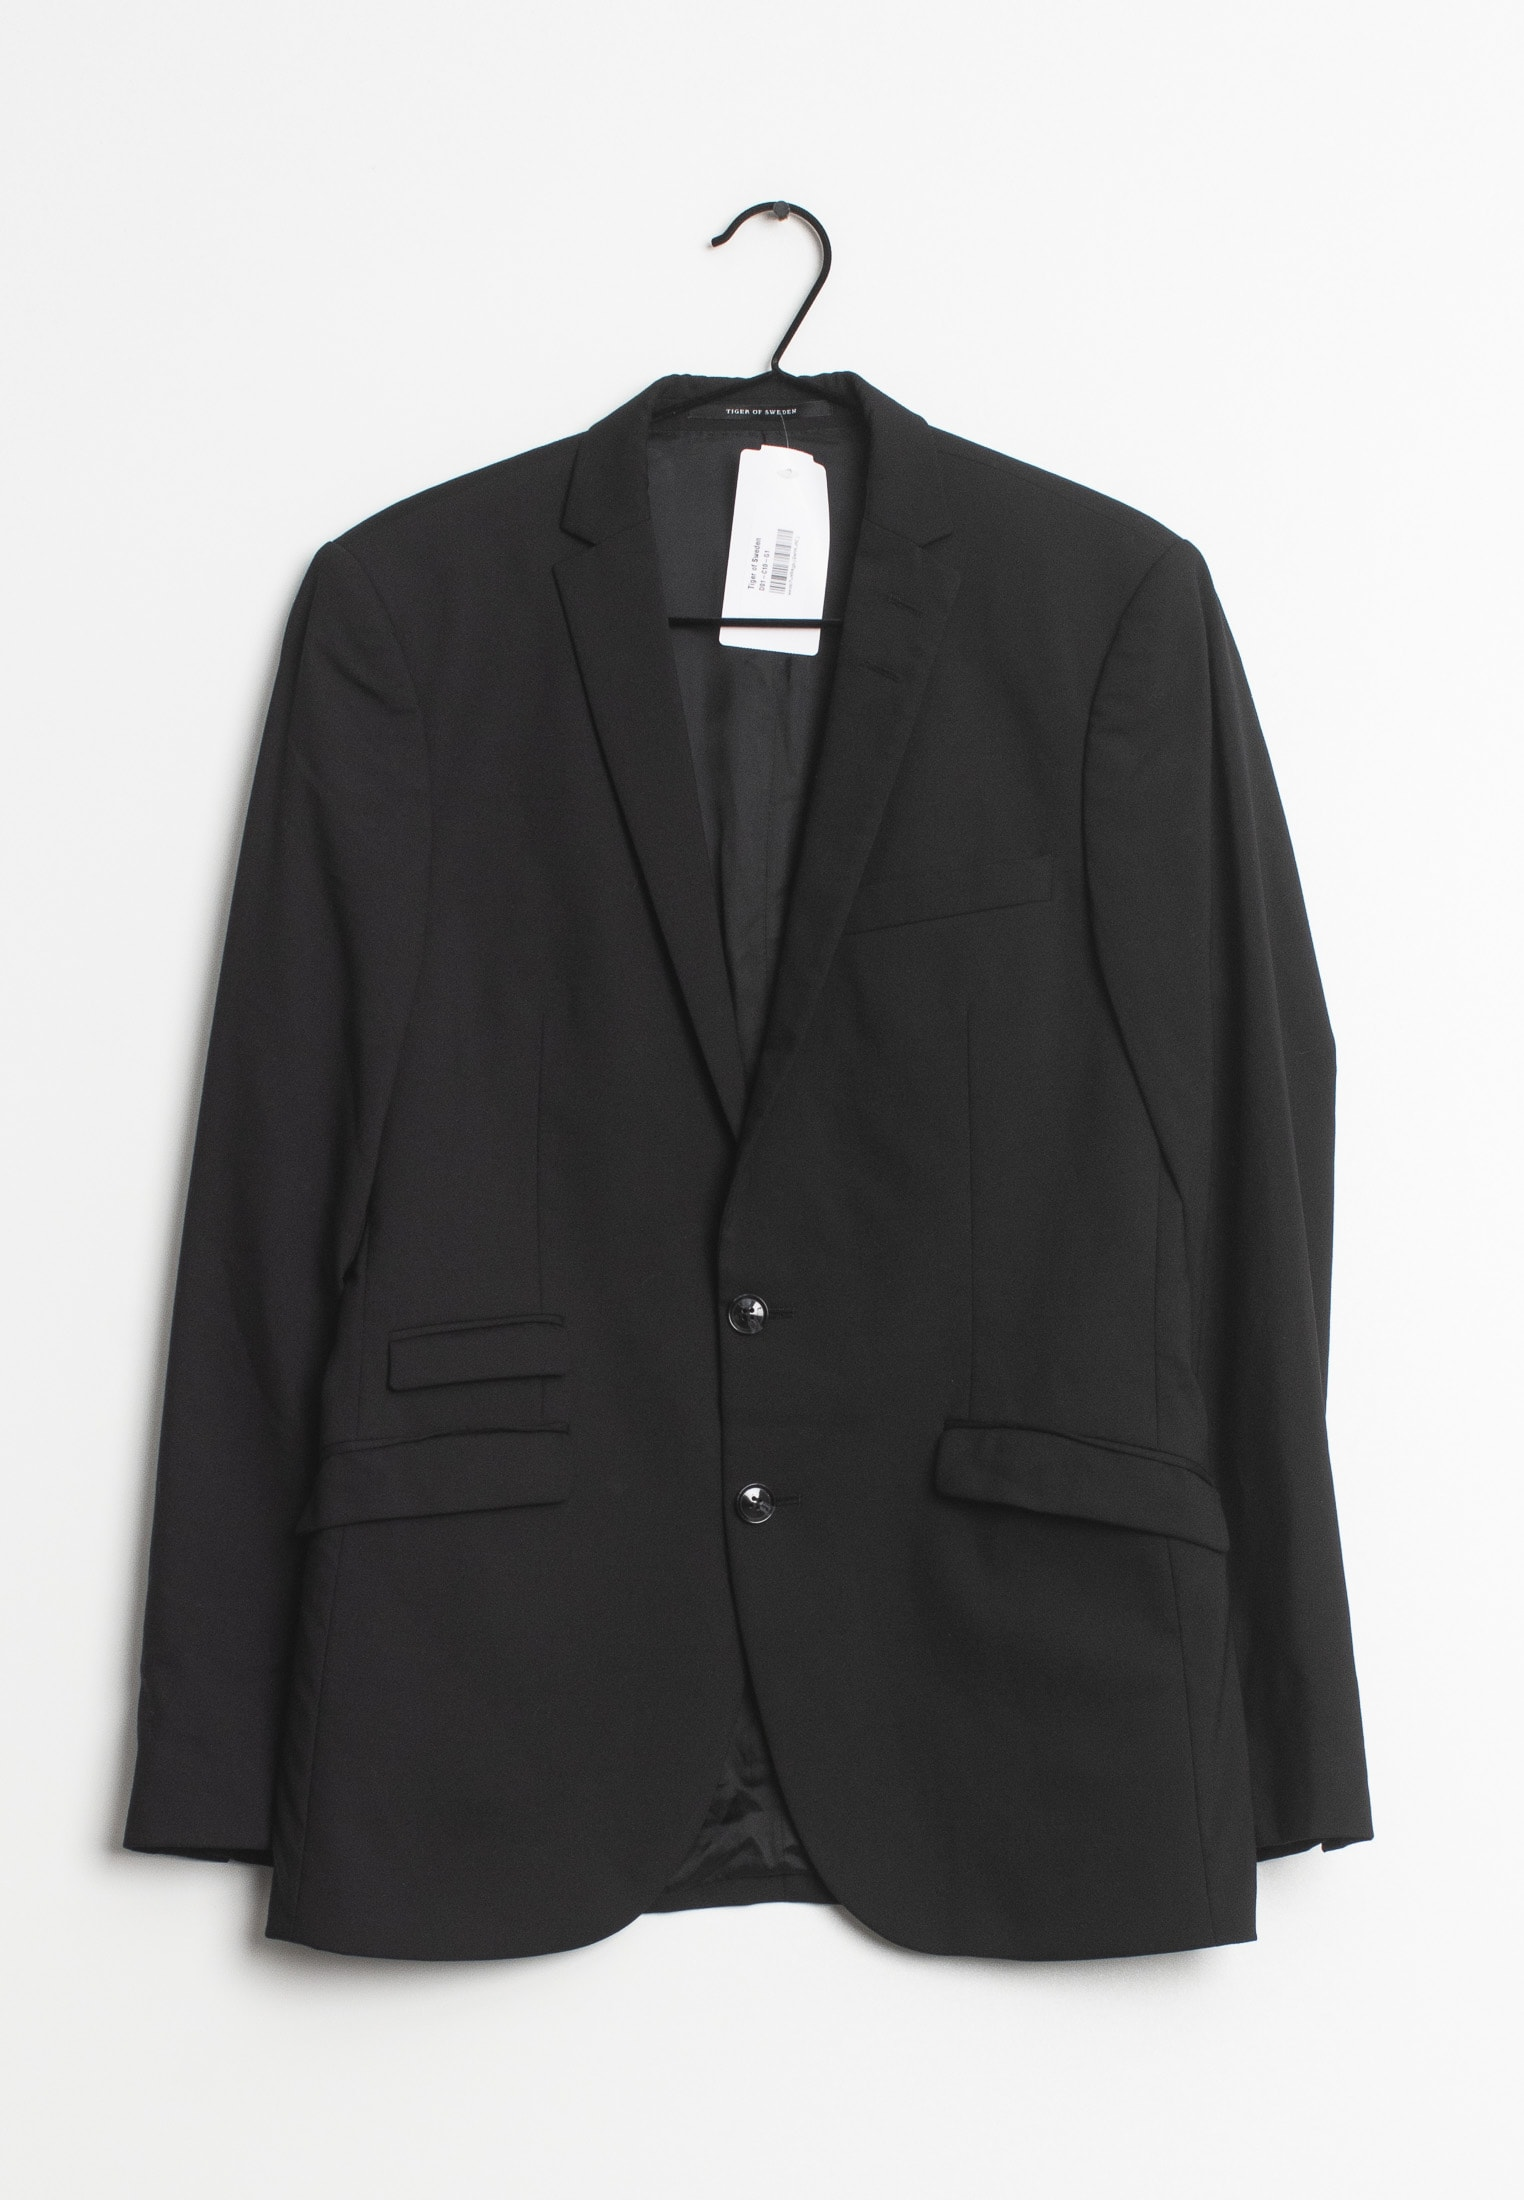 Tiger of Sweden blazer, sort, 48